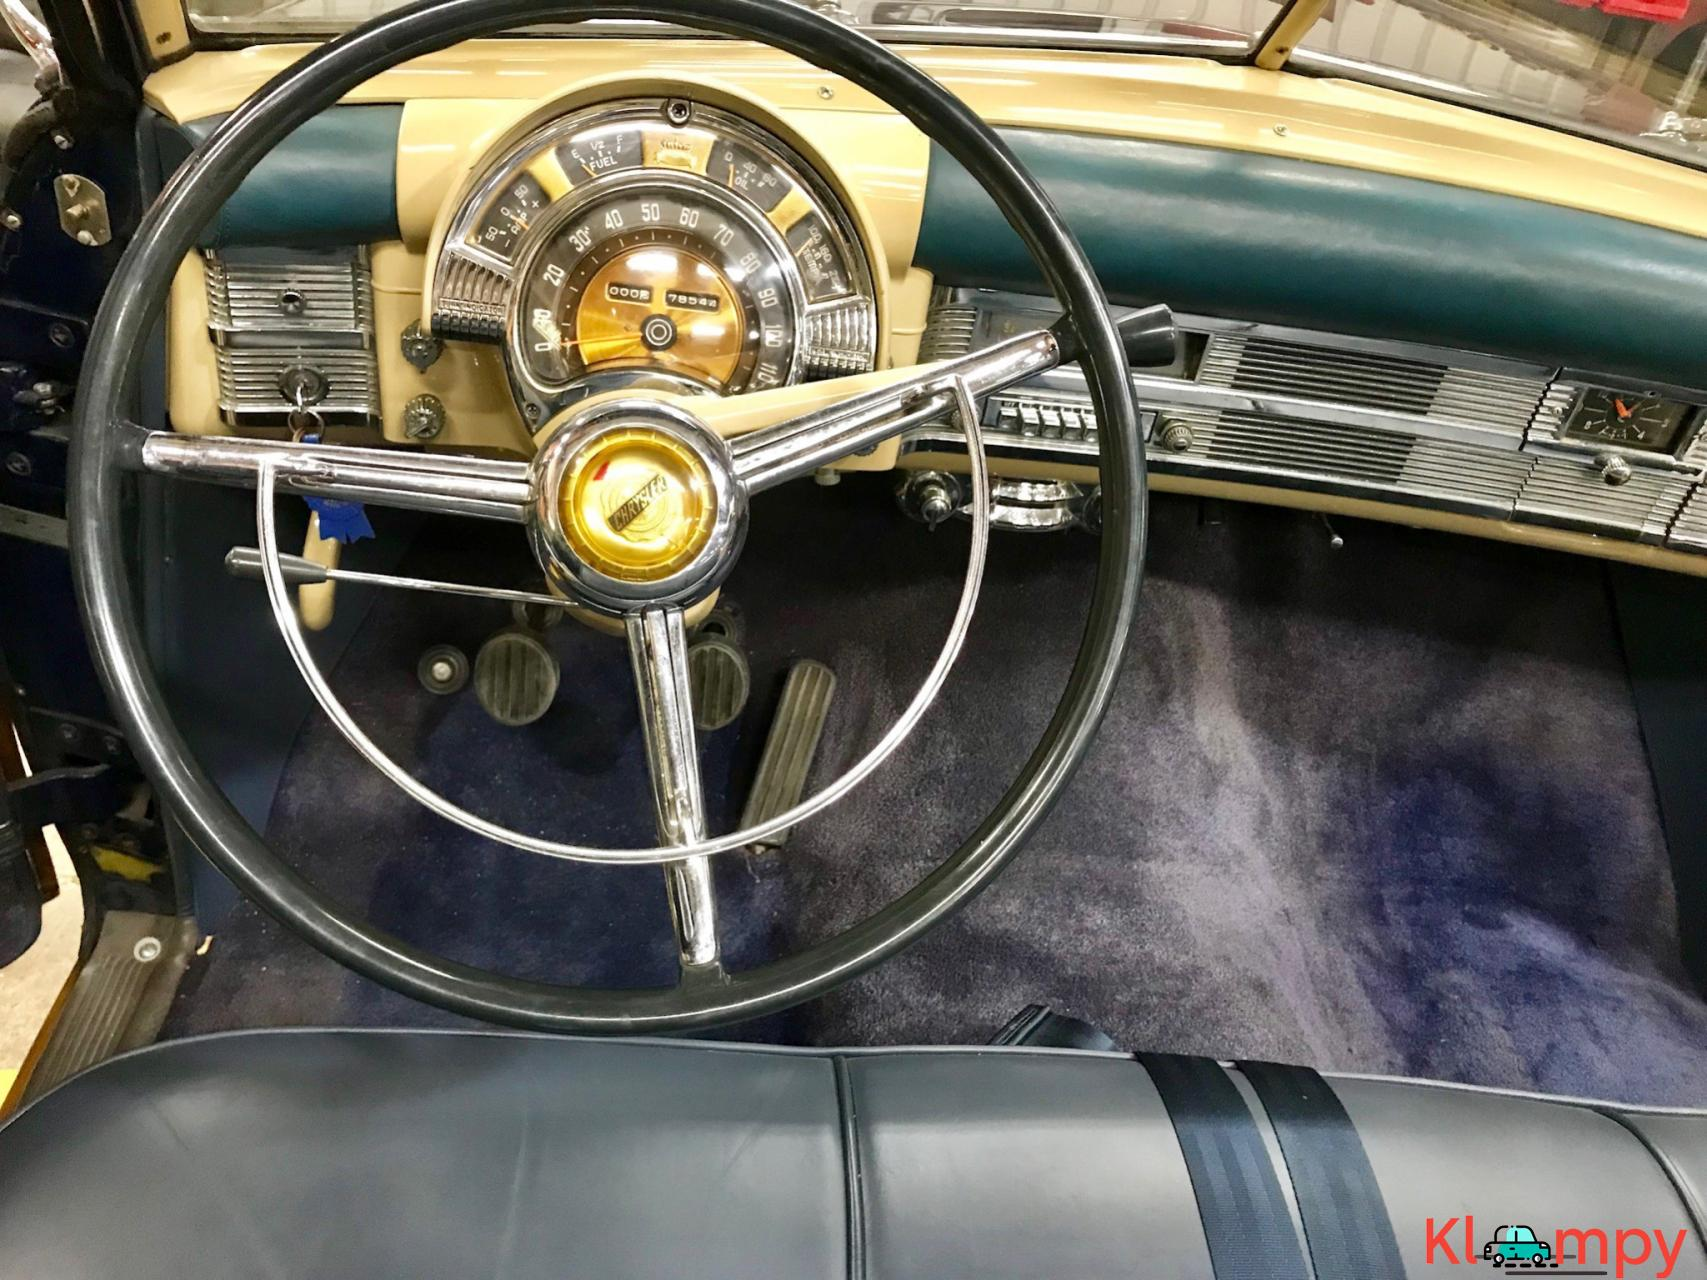 1949 Chrysler Town & Country Convertible - 12/16